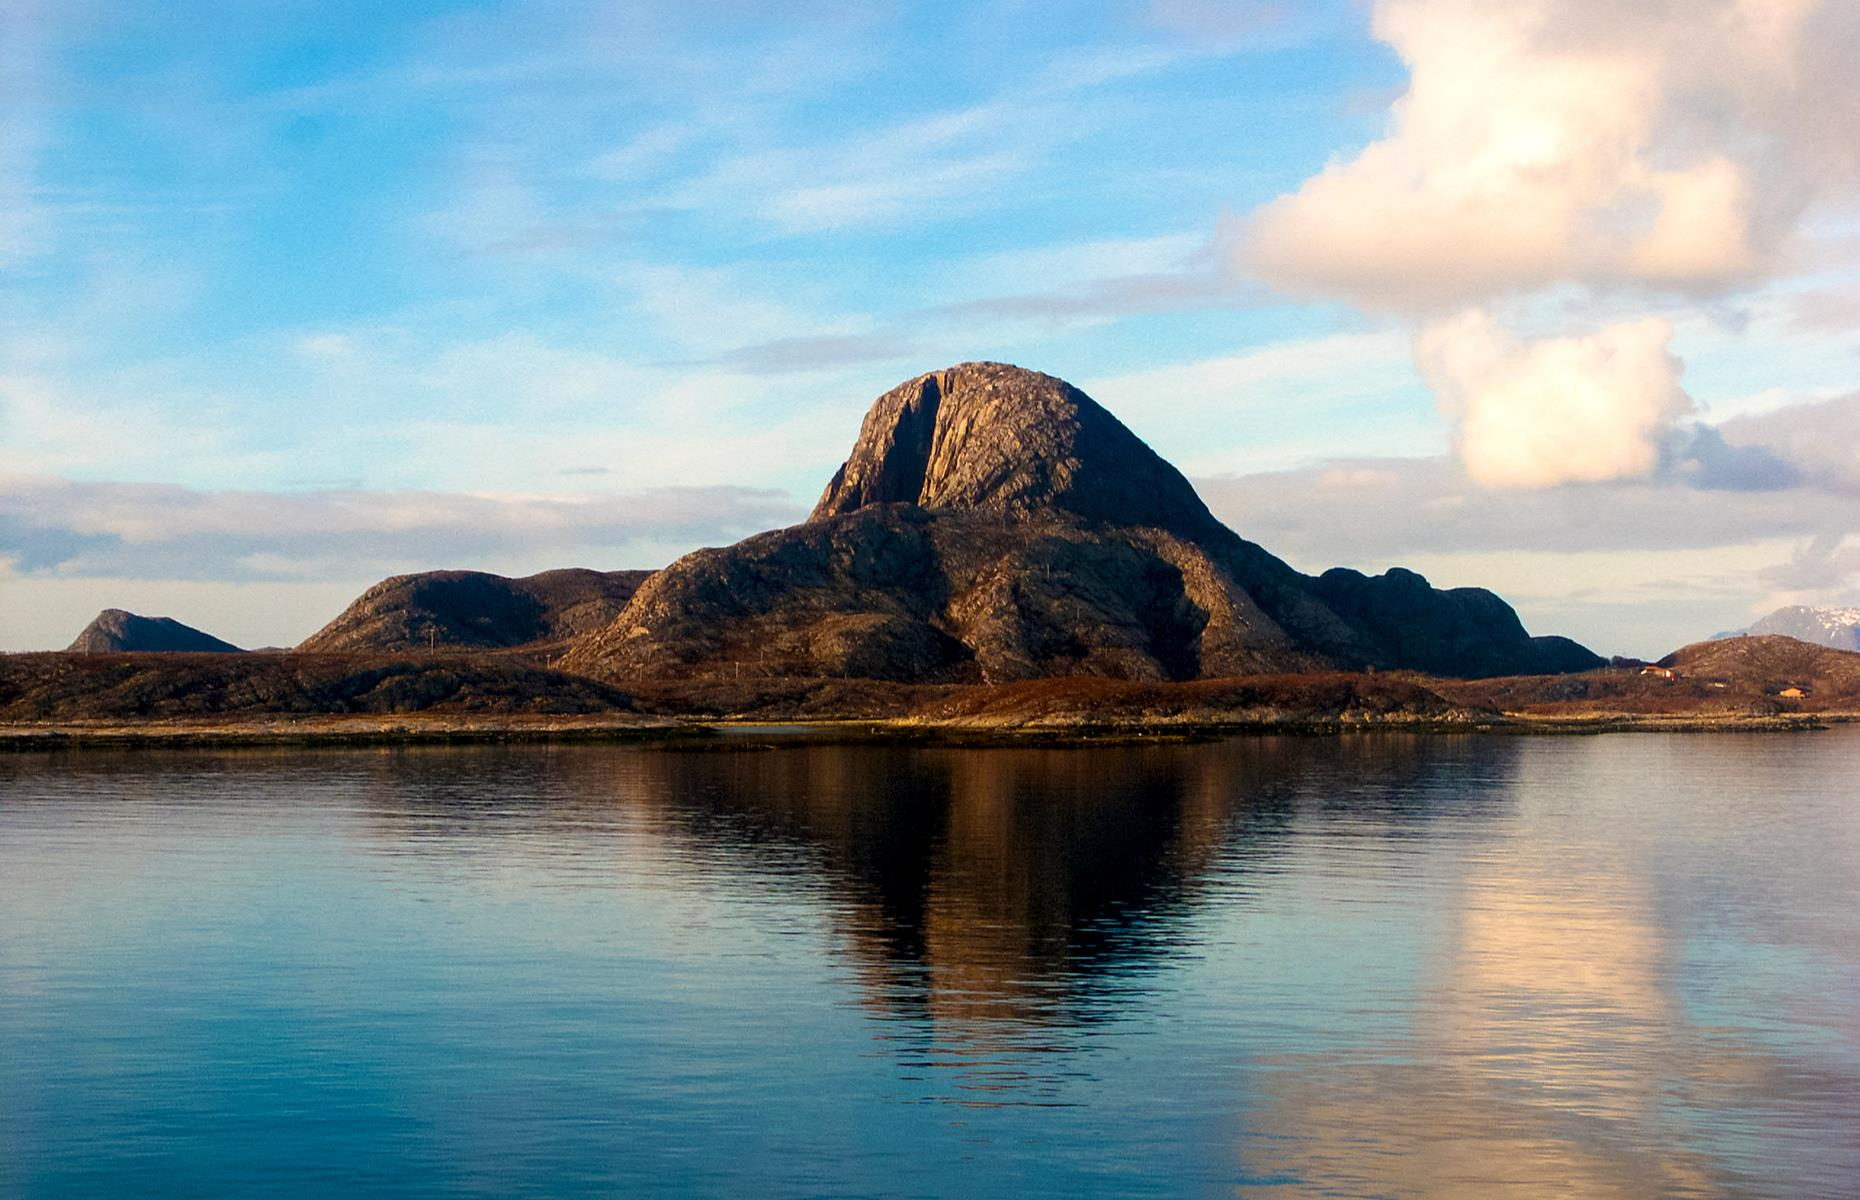 Slide 29 of 35: This hulking mountain, distinct for the gaping hole at its center, is steeped in folklore. Its story involves a troll, Hestmannen, who was chasing a beautiful woman, Lekamøya. As the path widened between them, Hestmannen became angry and shot an arrow intending to kill Lekamøya. However, the powerful troll king saved the day by throwing a hat into the arrow's path, saving the girl. The pierced hat purportedly turned into the mountain we see today, arrow hole and all. Typically you can visit the mountain on a moderate hike and even camp in its vicinity.